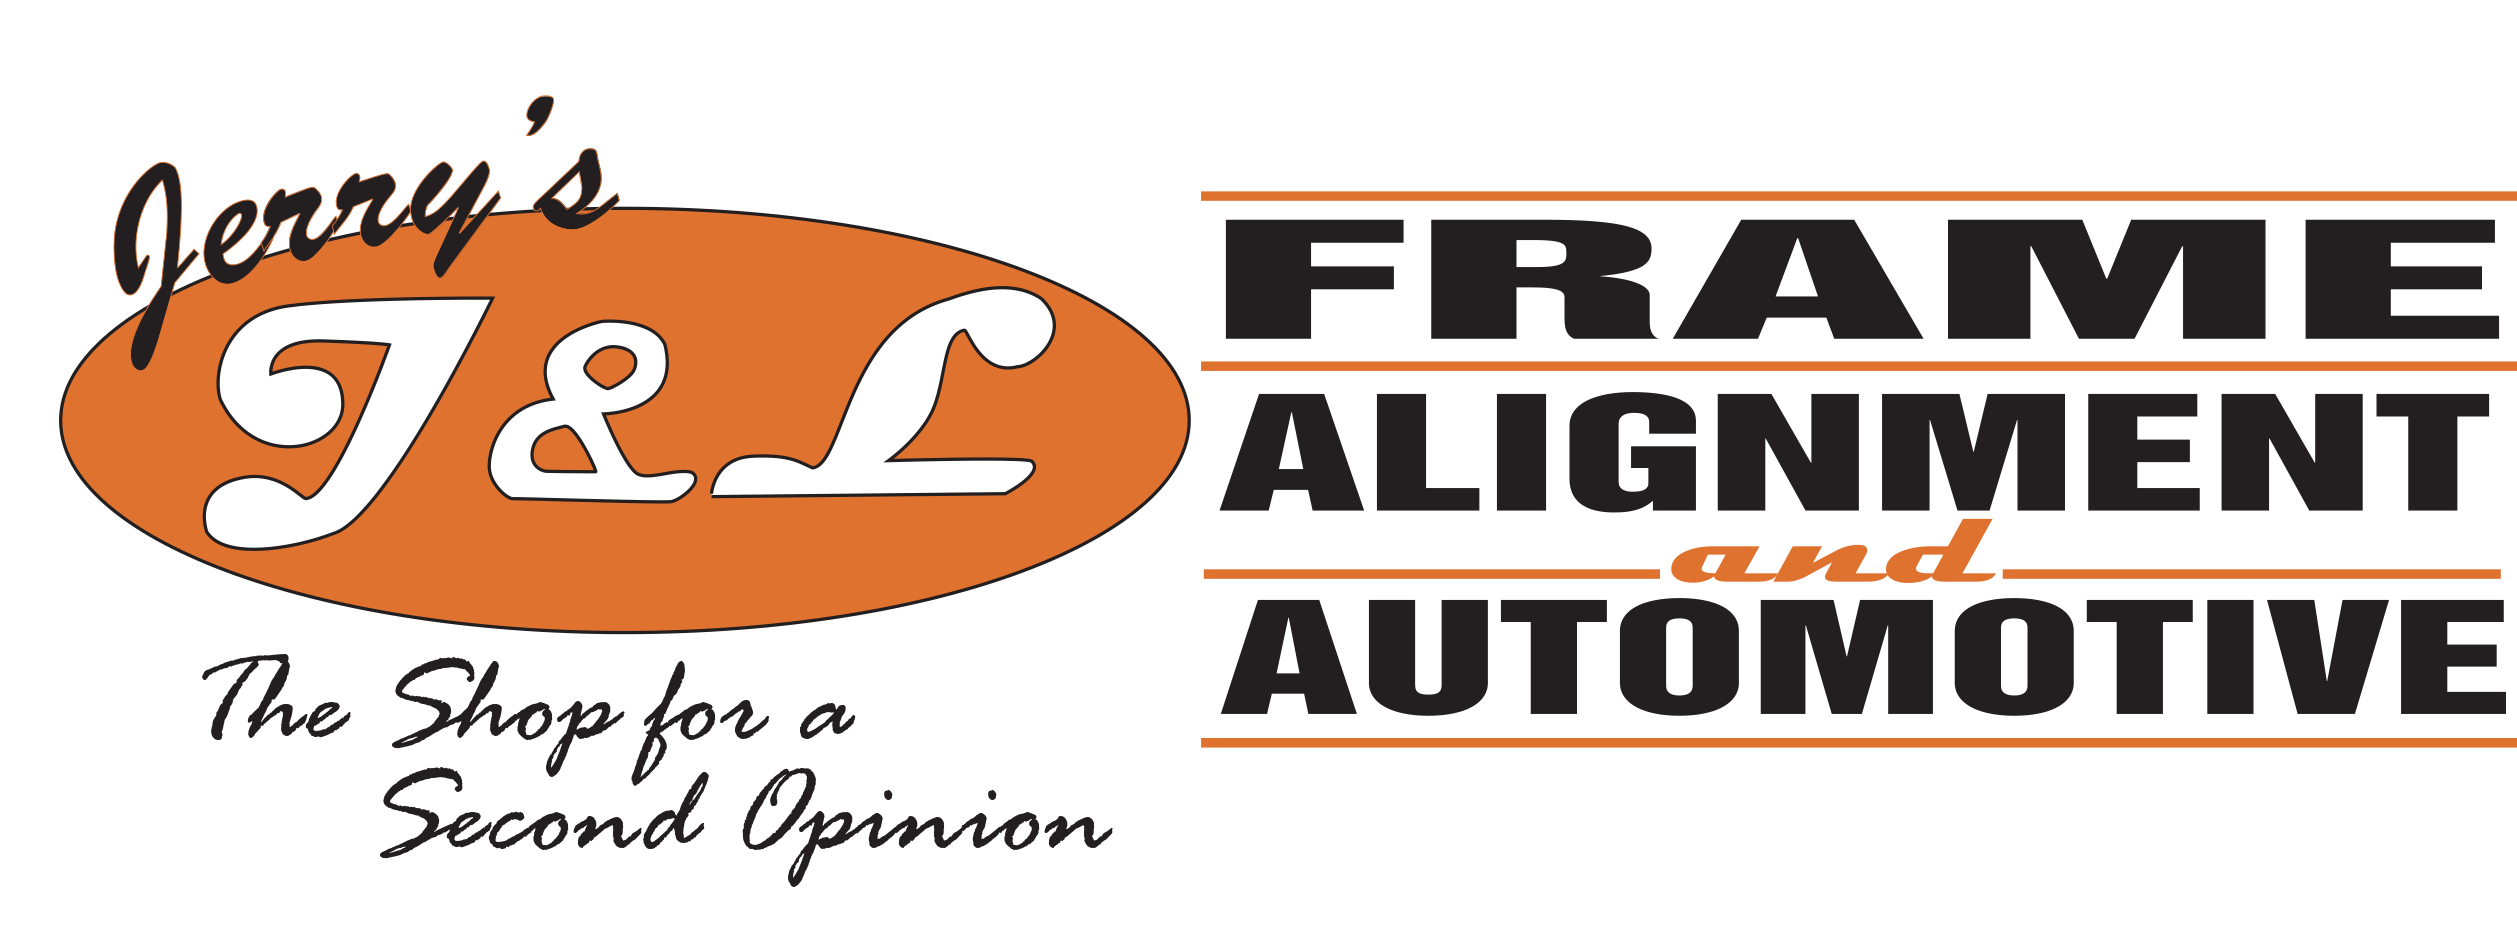 Jerry's J & L Frame Alignment & Automotive